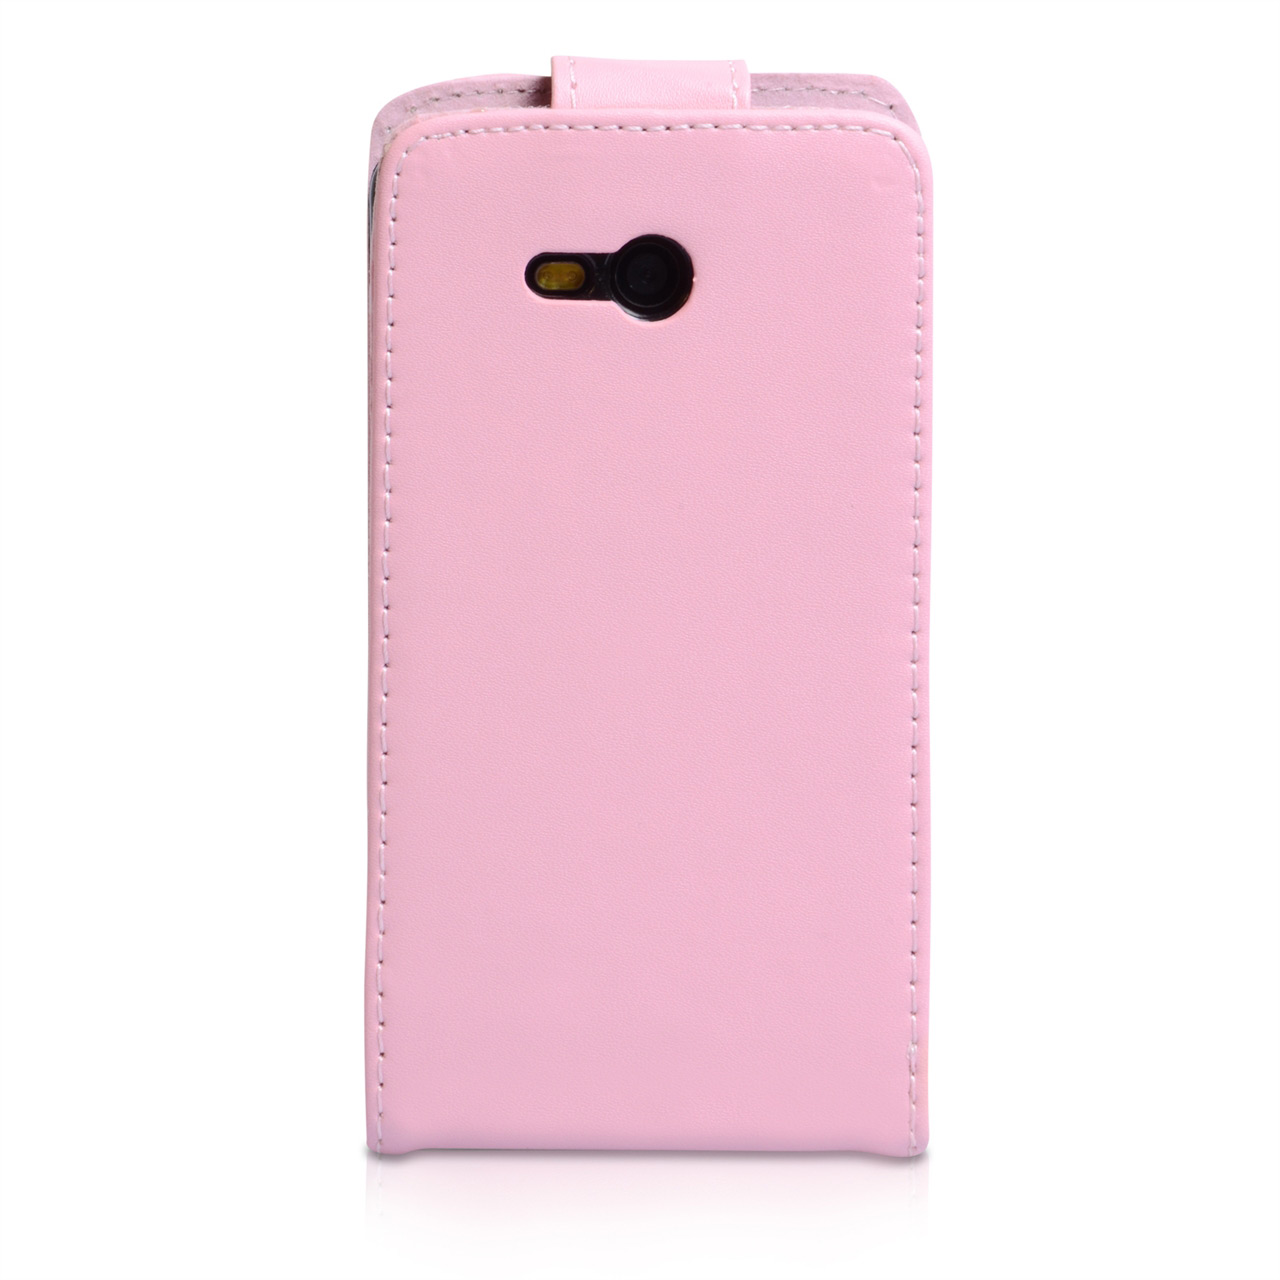 YouSave Nokia Lumia 820 Leather Effect Flip Case - Baby Pink